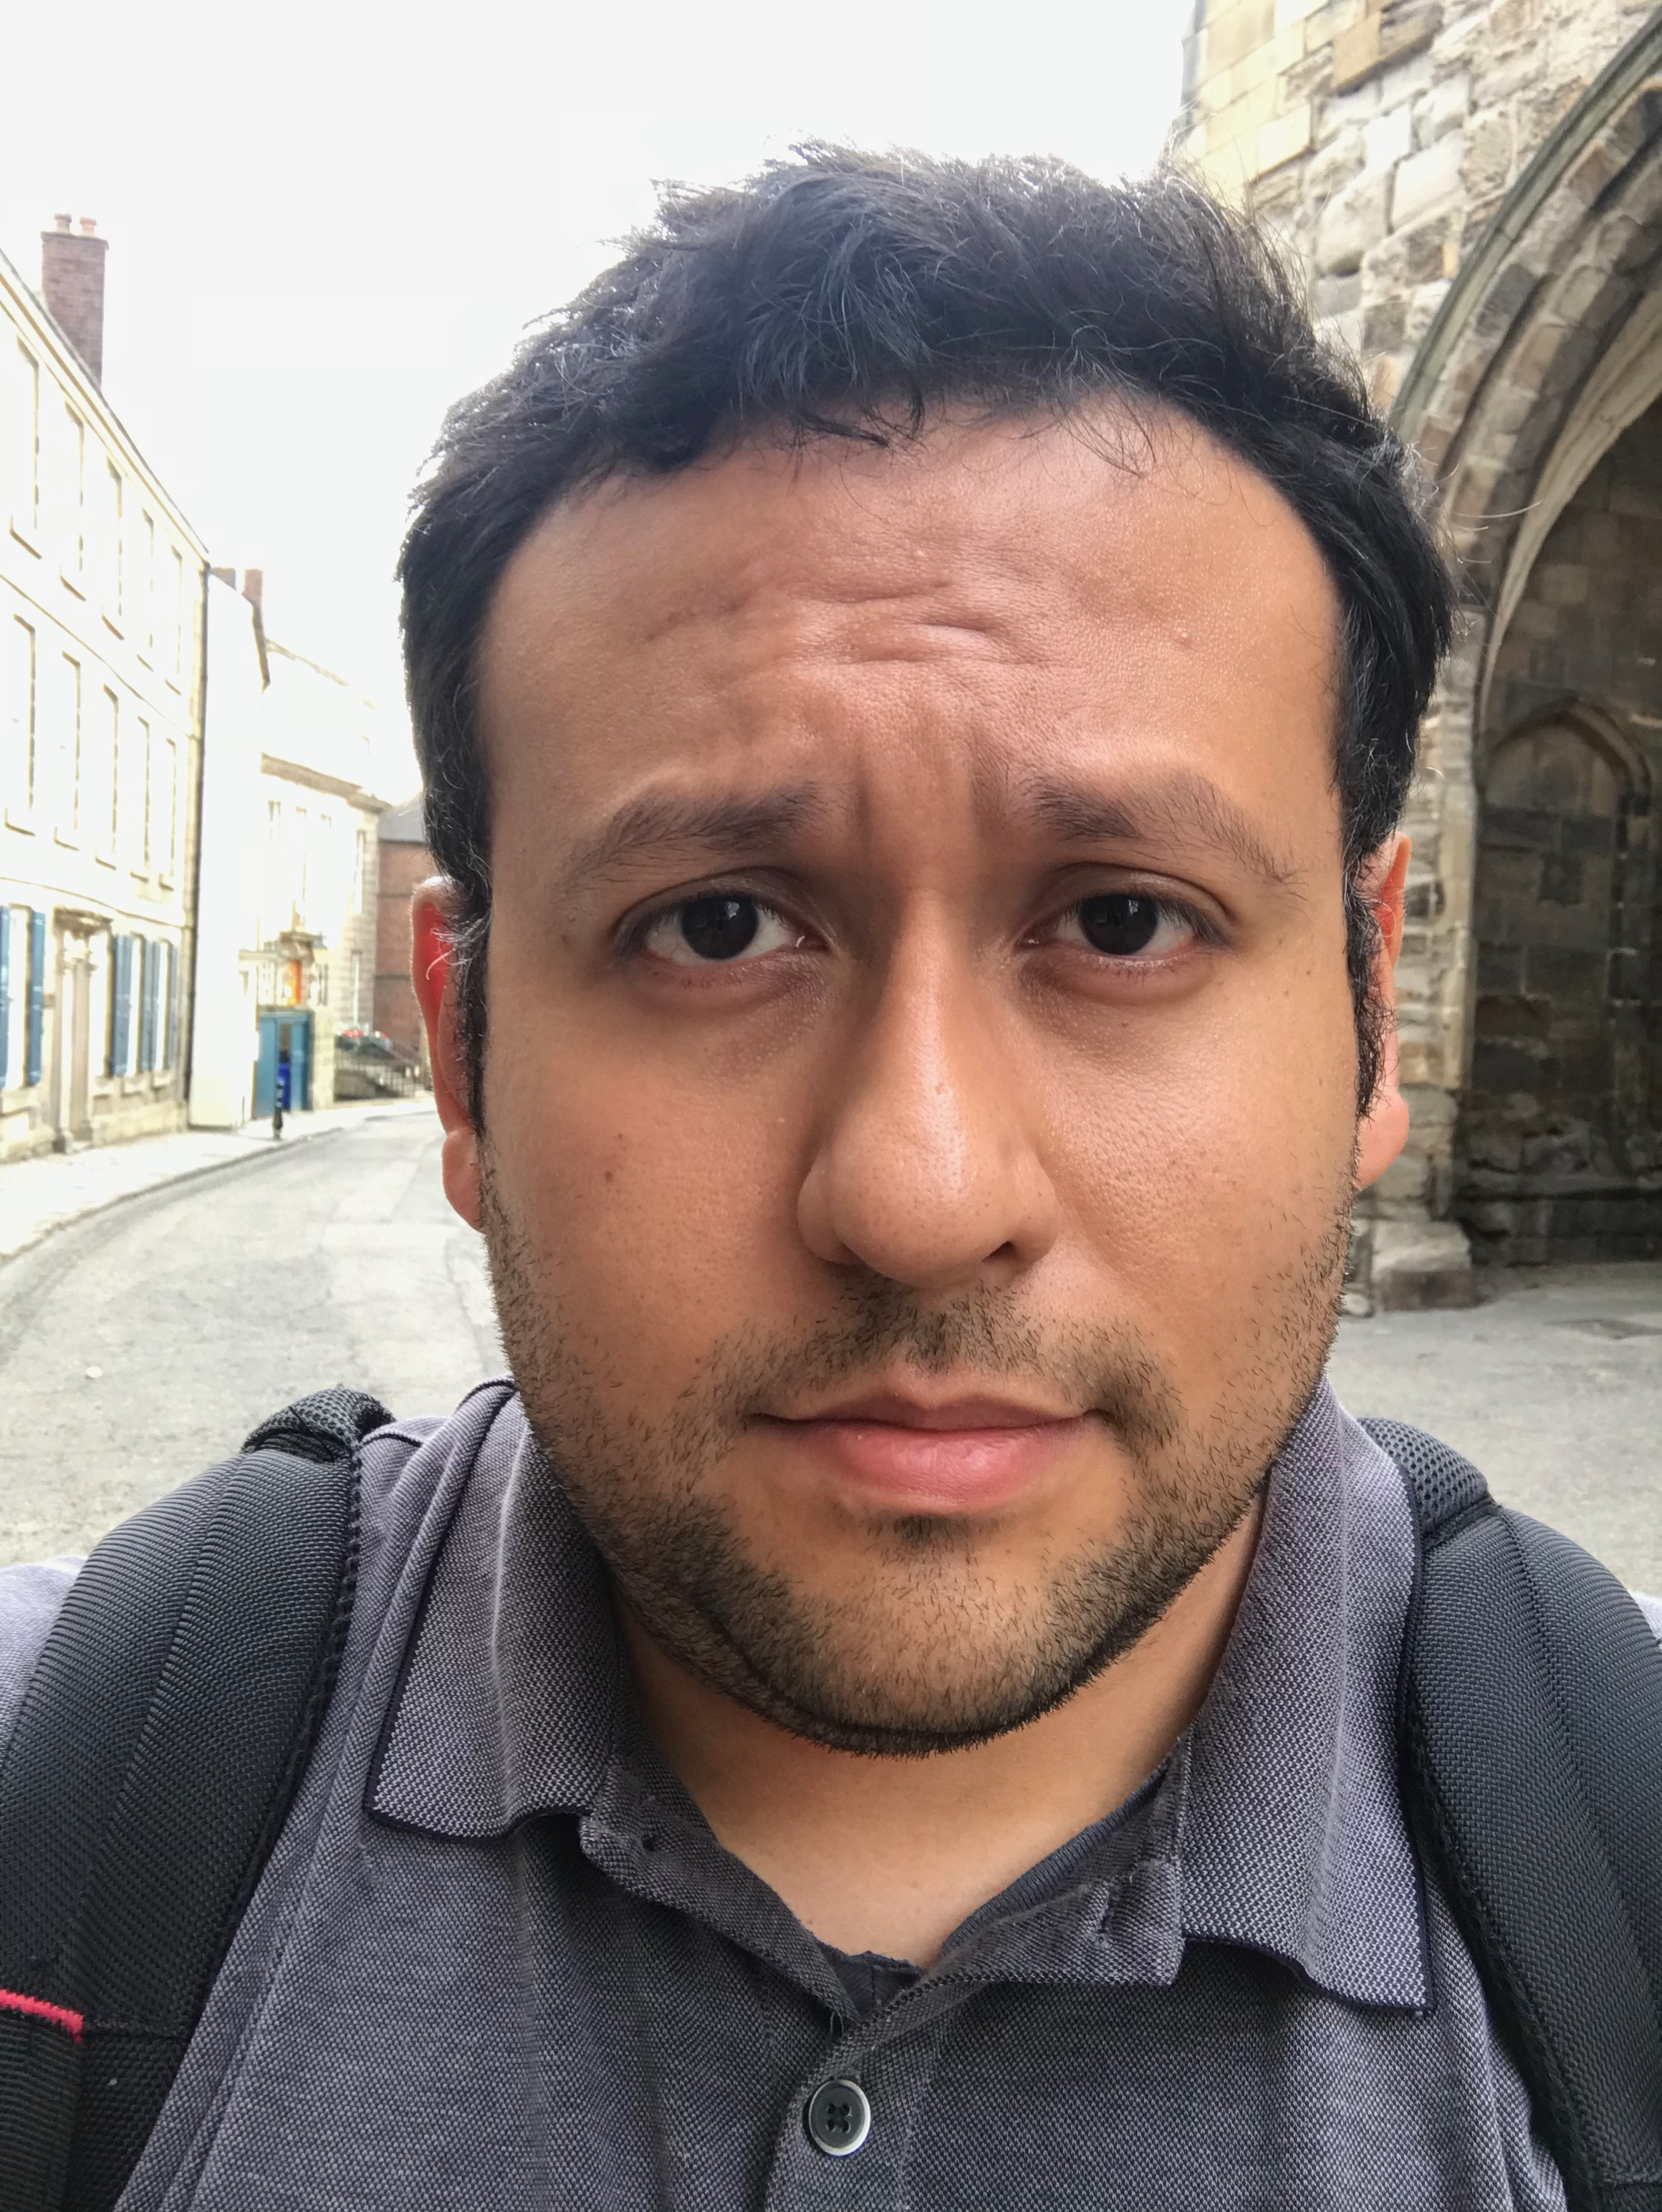 me in durham, uk during my research trip in 2018